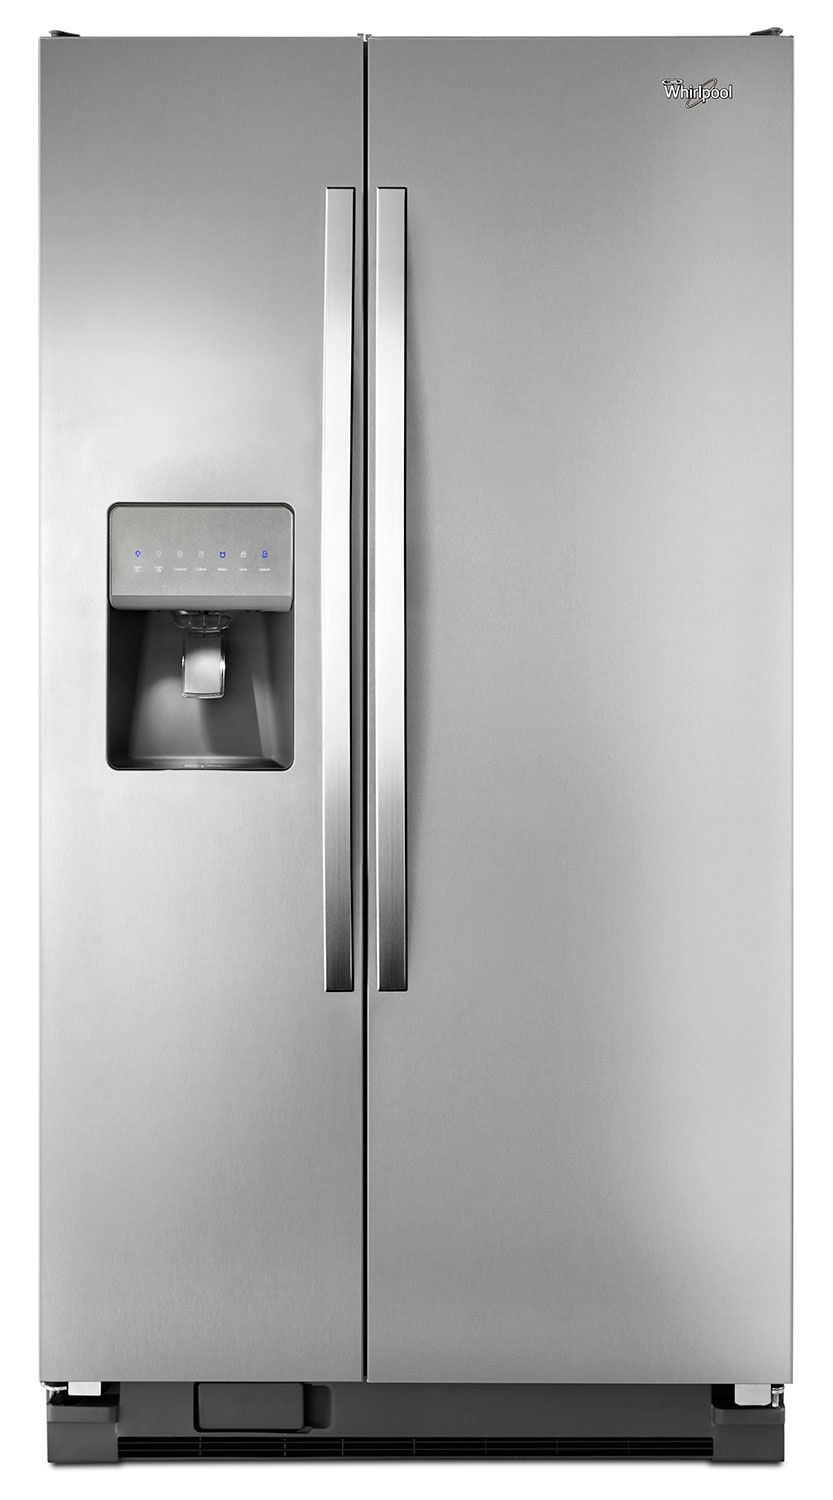 Whirlpool Stainless Steel Side-by-Side Refrigerator (24.5 Cu. Ft.) - WRS325FDAM